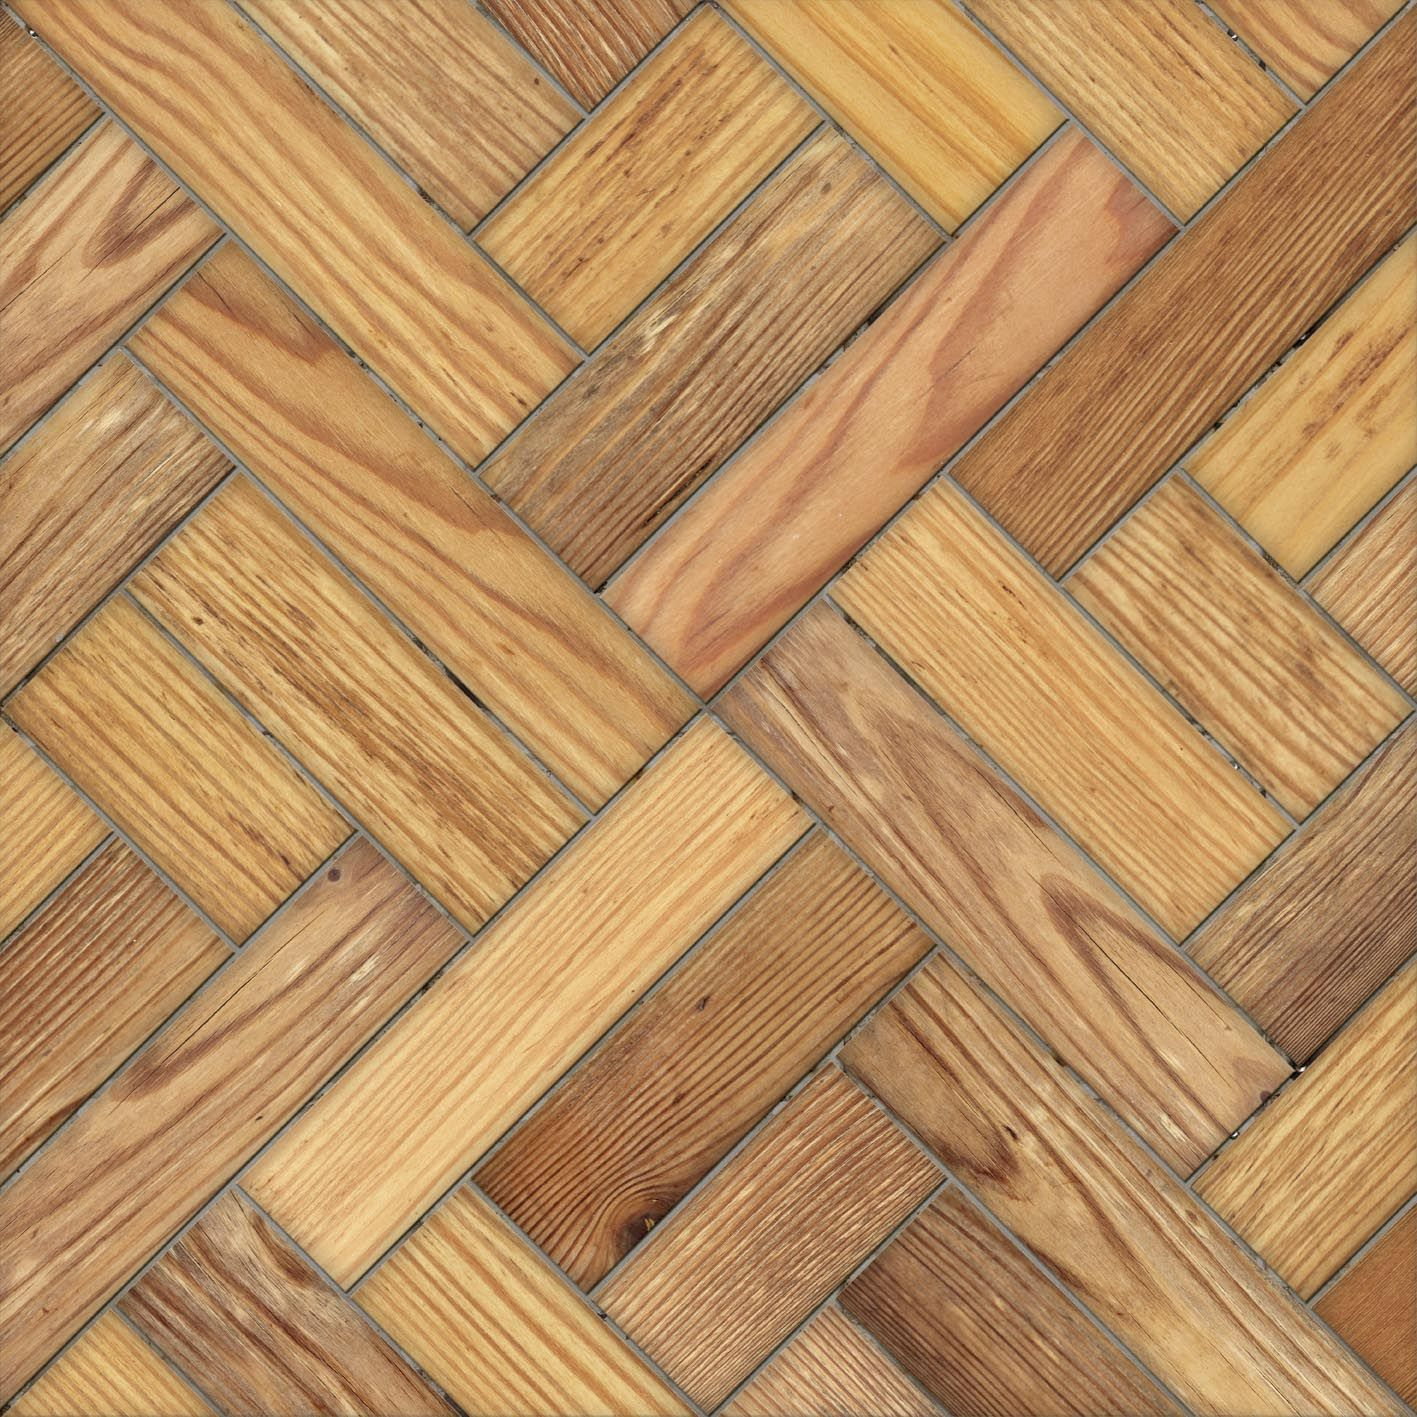 Parquet With Images Wood Parquet Flooring Flooring Wood Floors